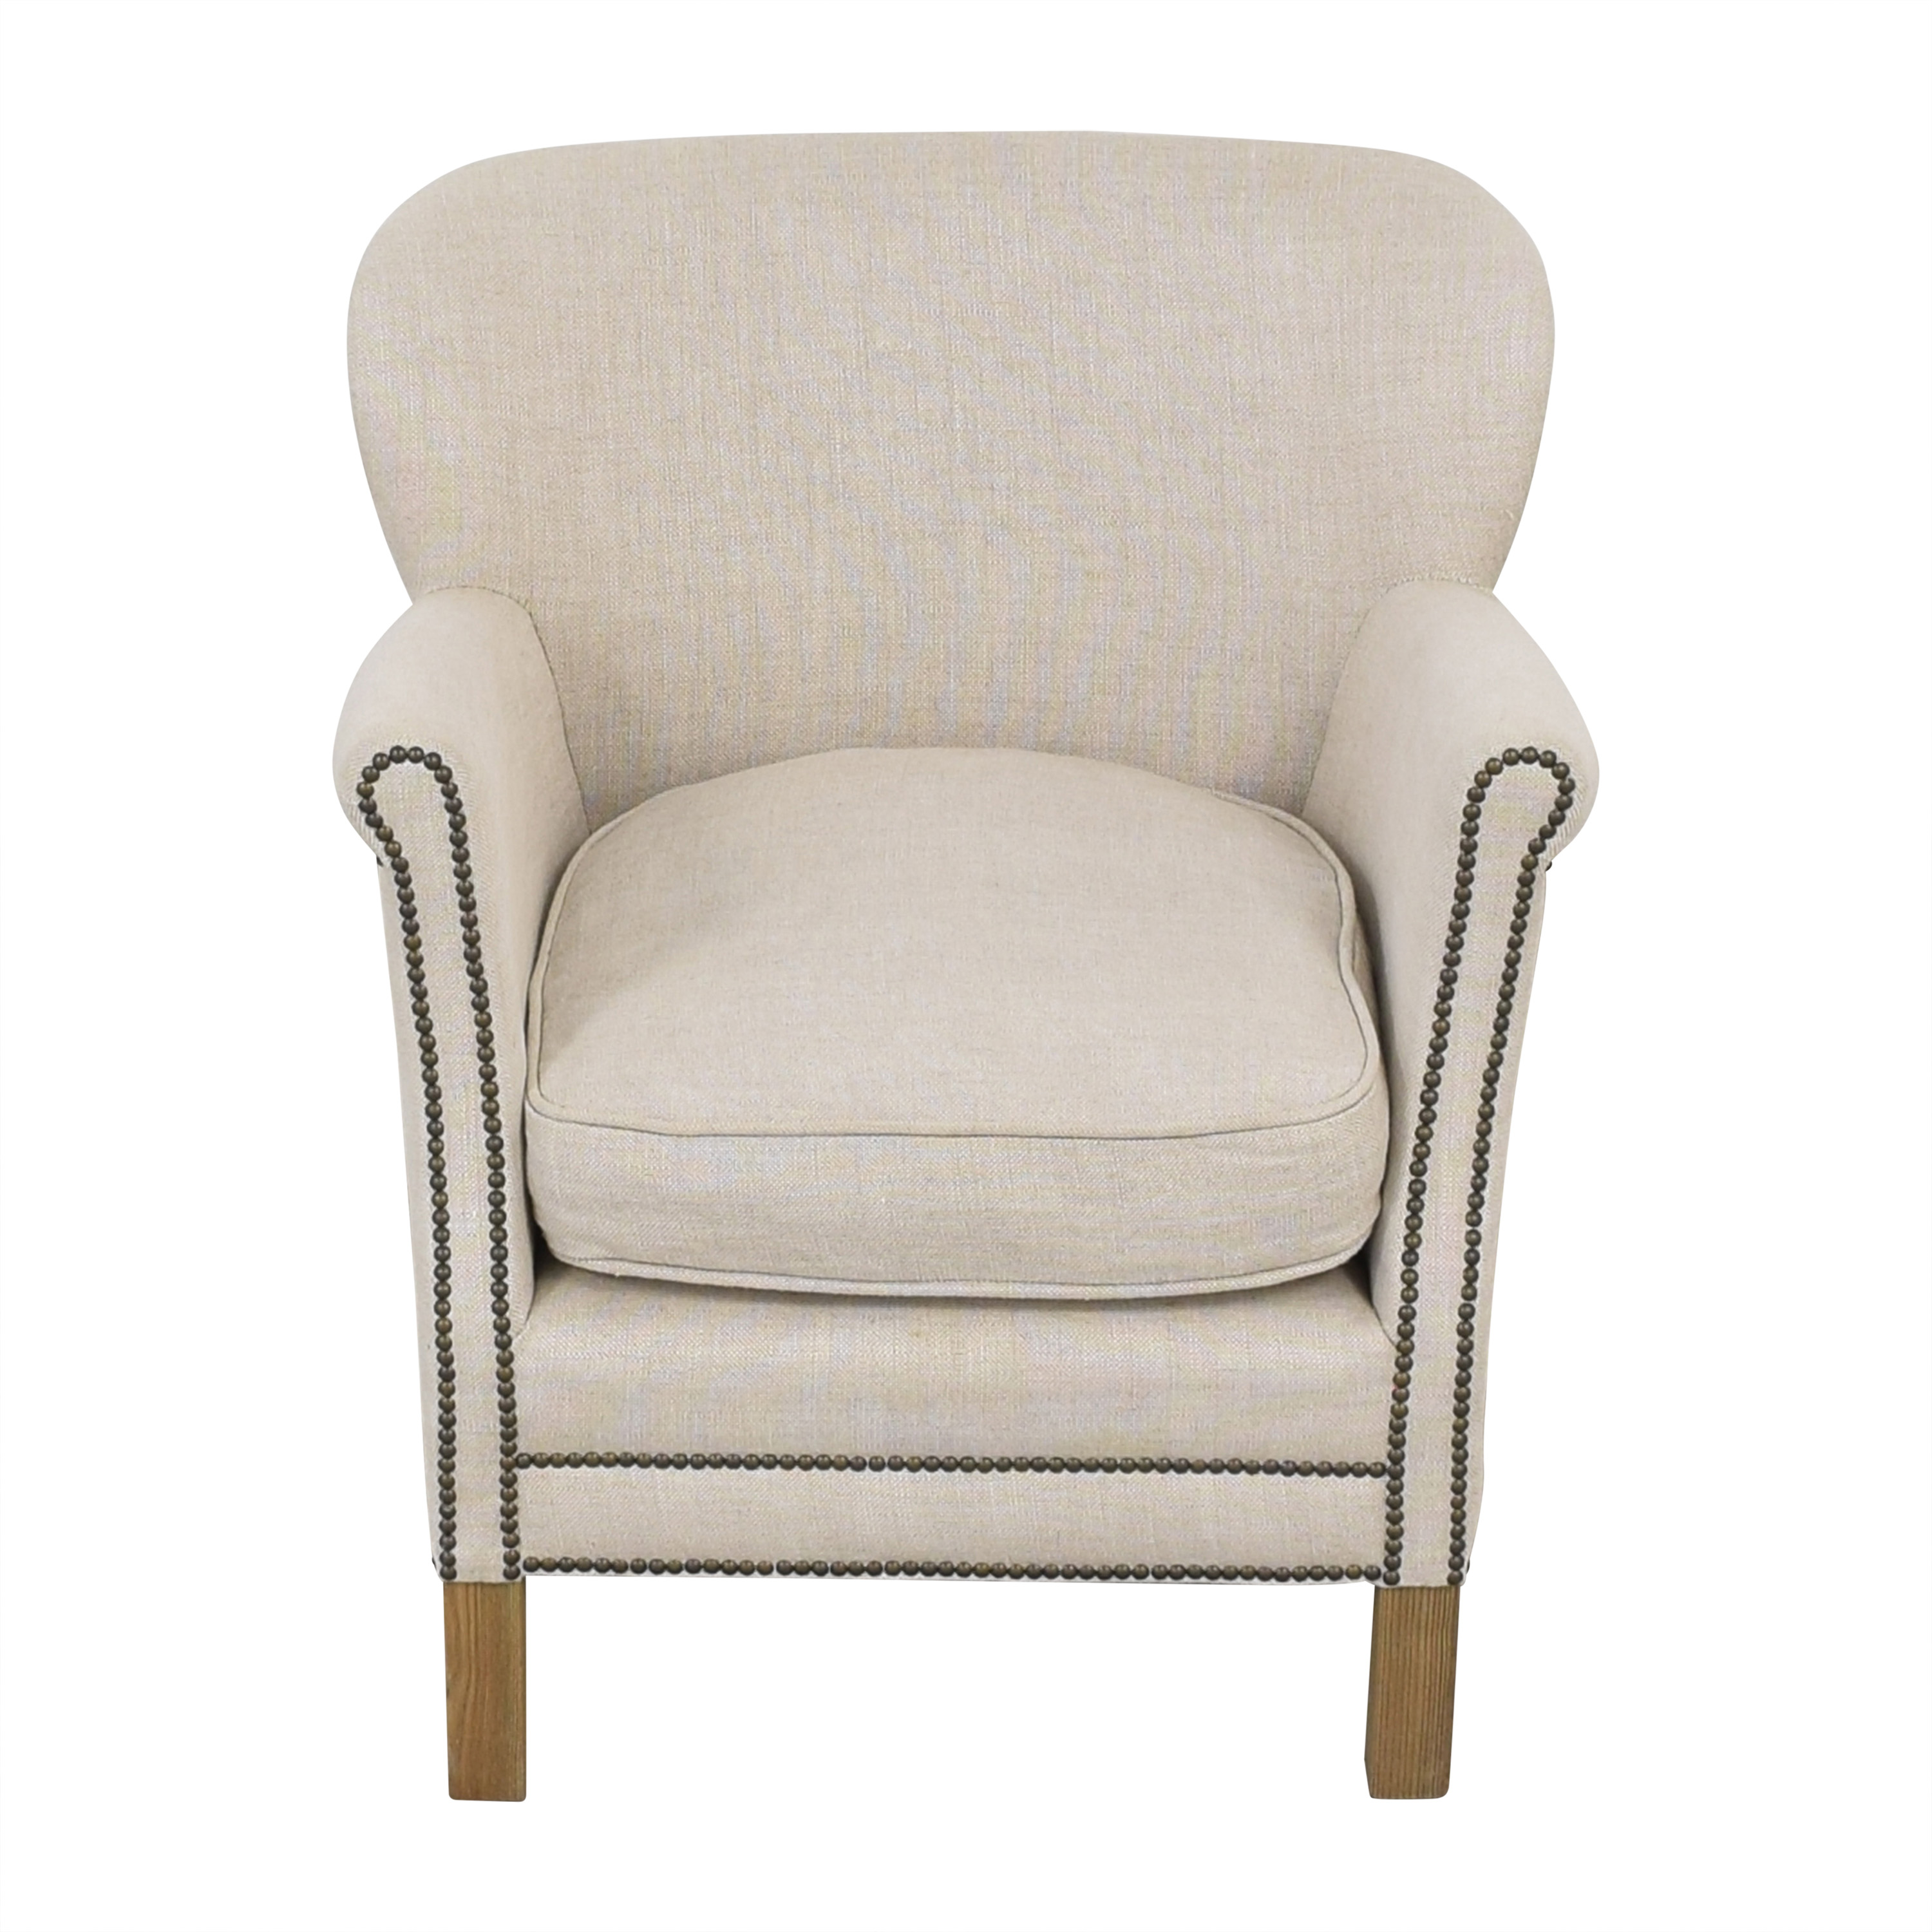 Restoration Hardware Professors Chair with Nailheads / Chairs